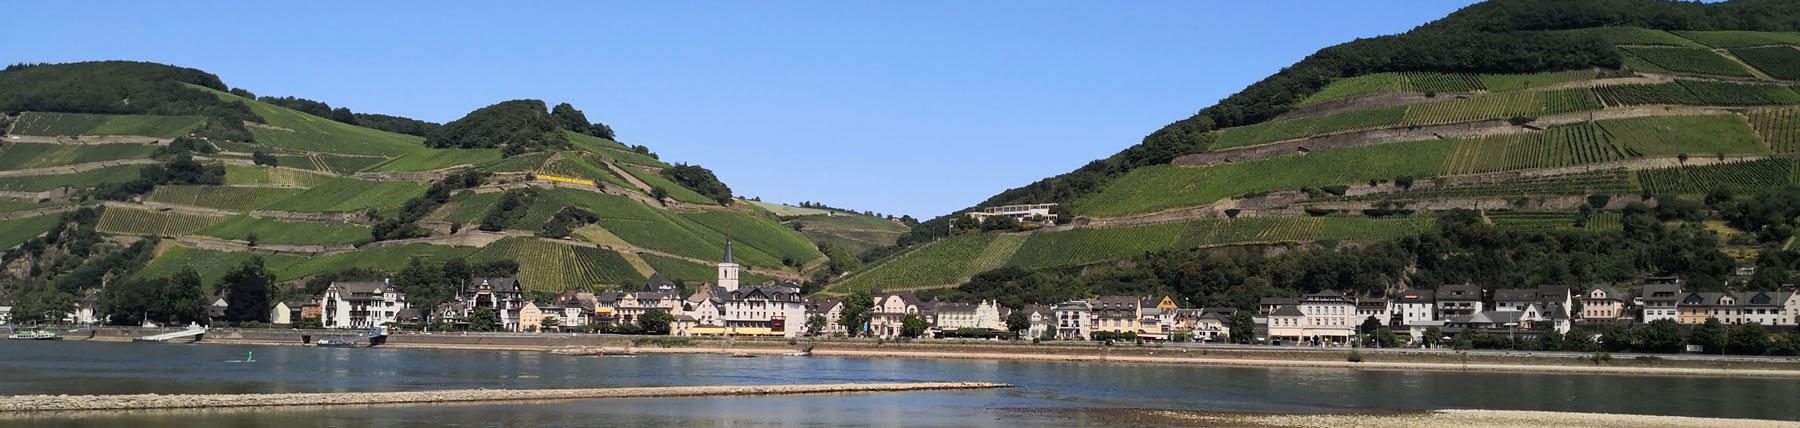 Banner image for Day 27 - Mannheim to Oberwesel